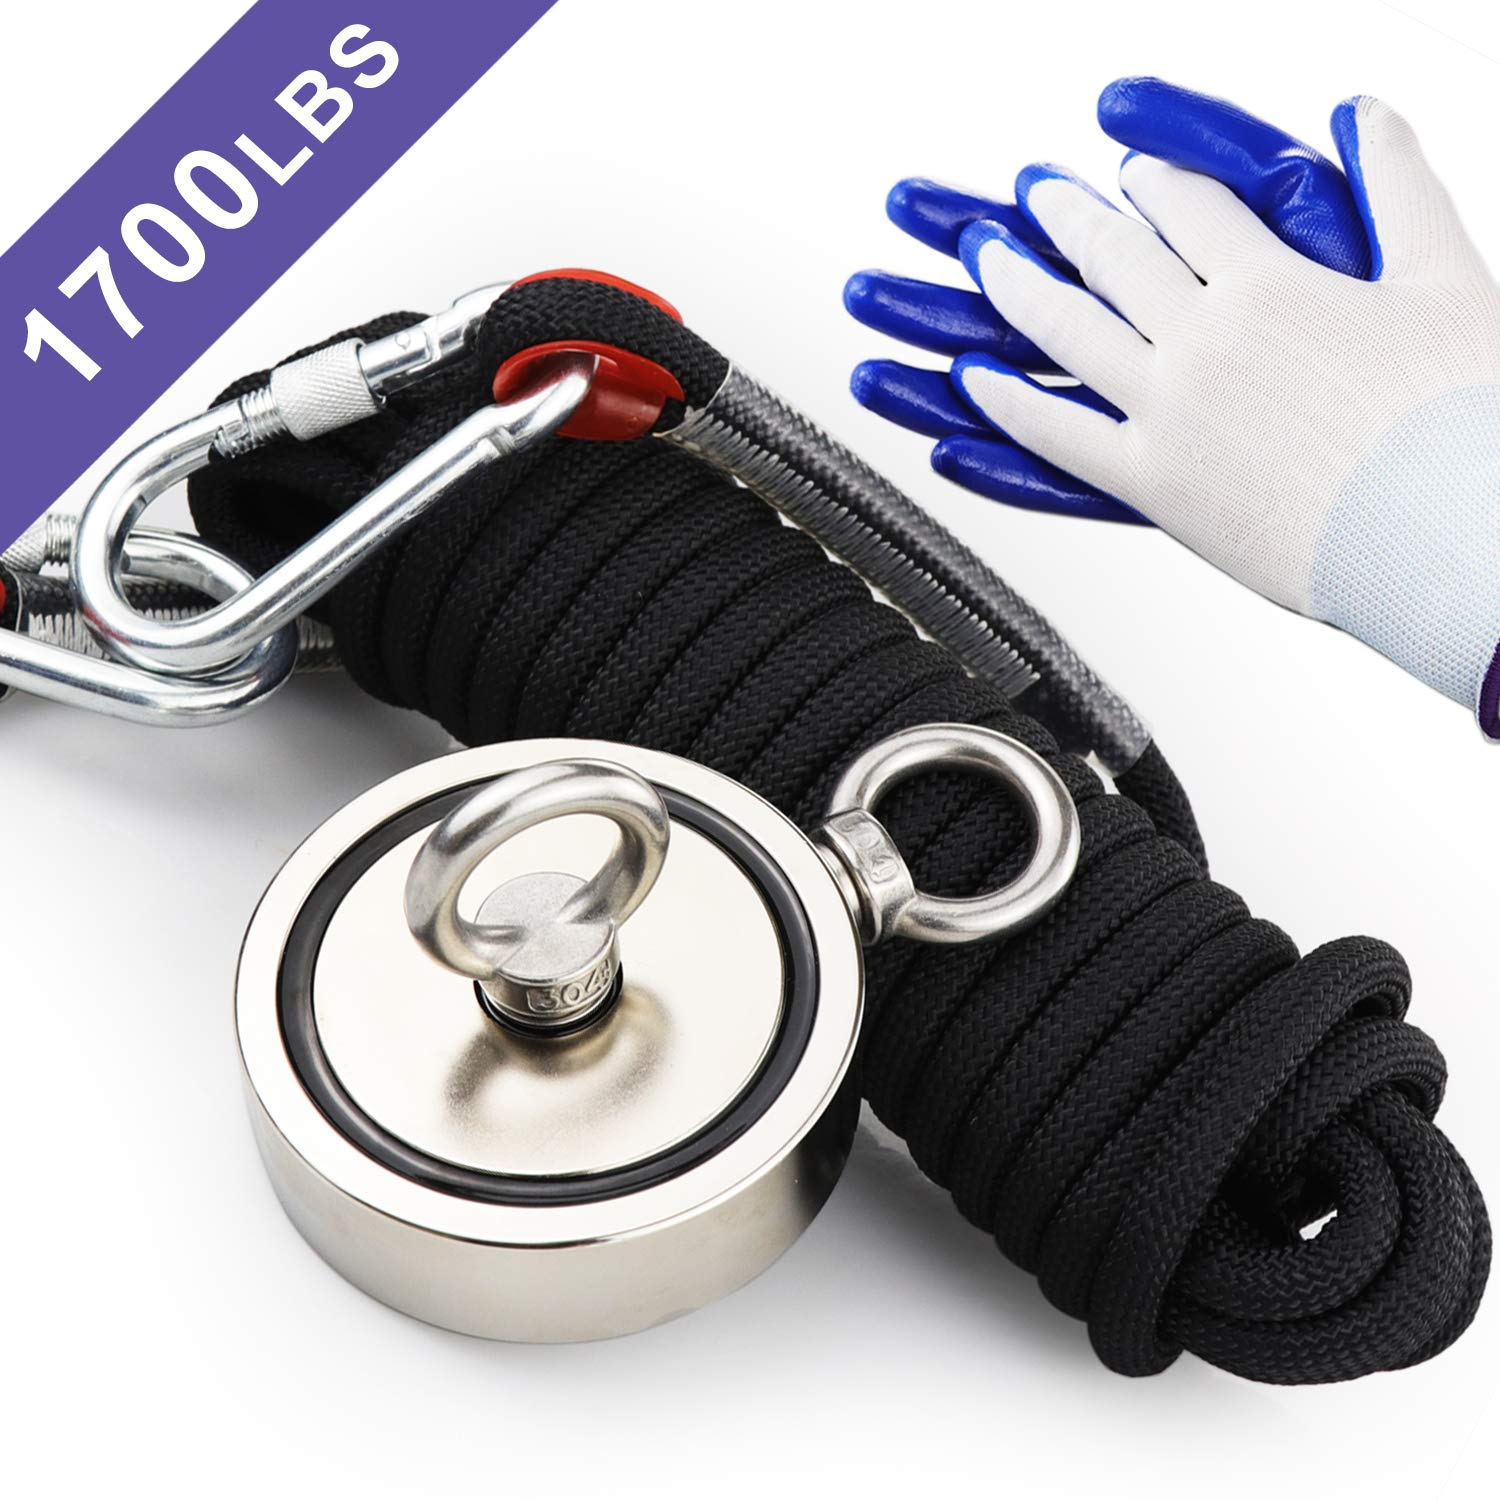 Double Sided Neodymium Fishing Magnet,Combined 1700 lbs(772KG) Pulling Force Rare Earth Magnets with high Strength Polyester Rope and Protective Gloves